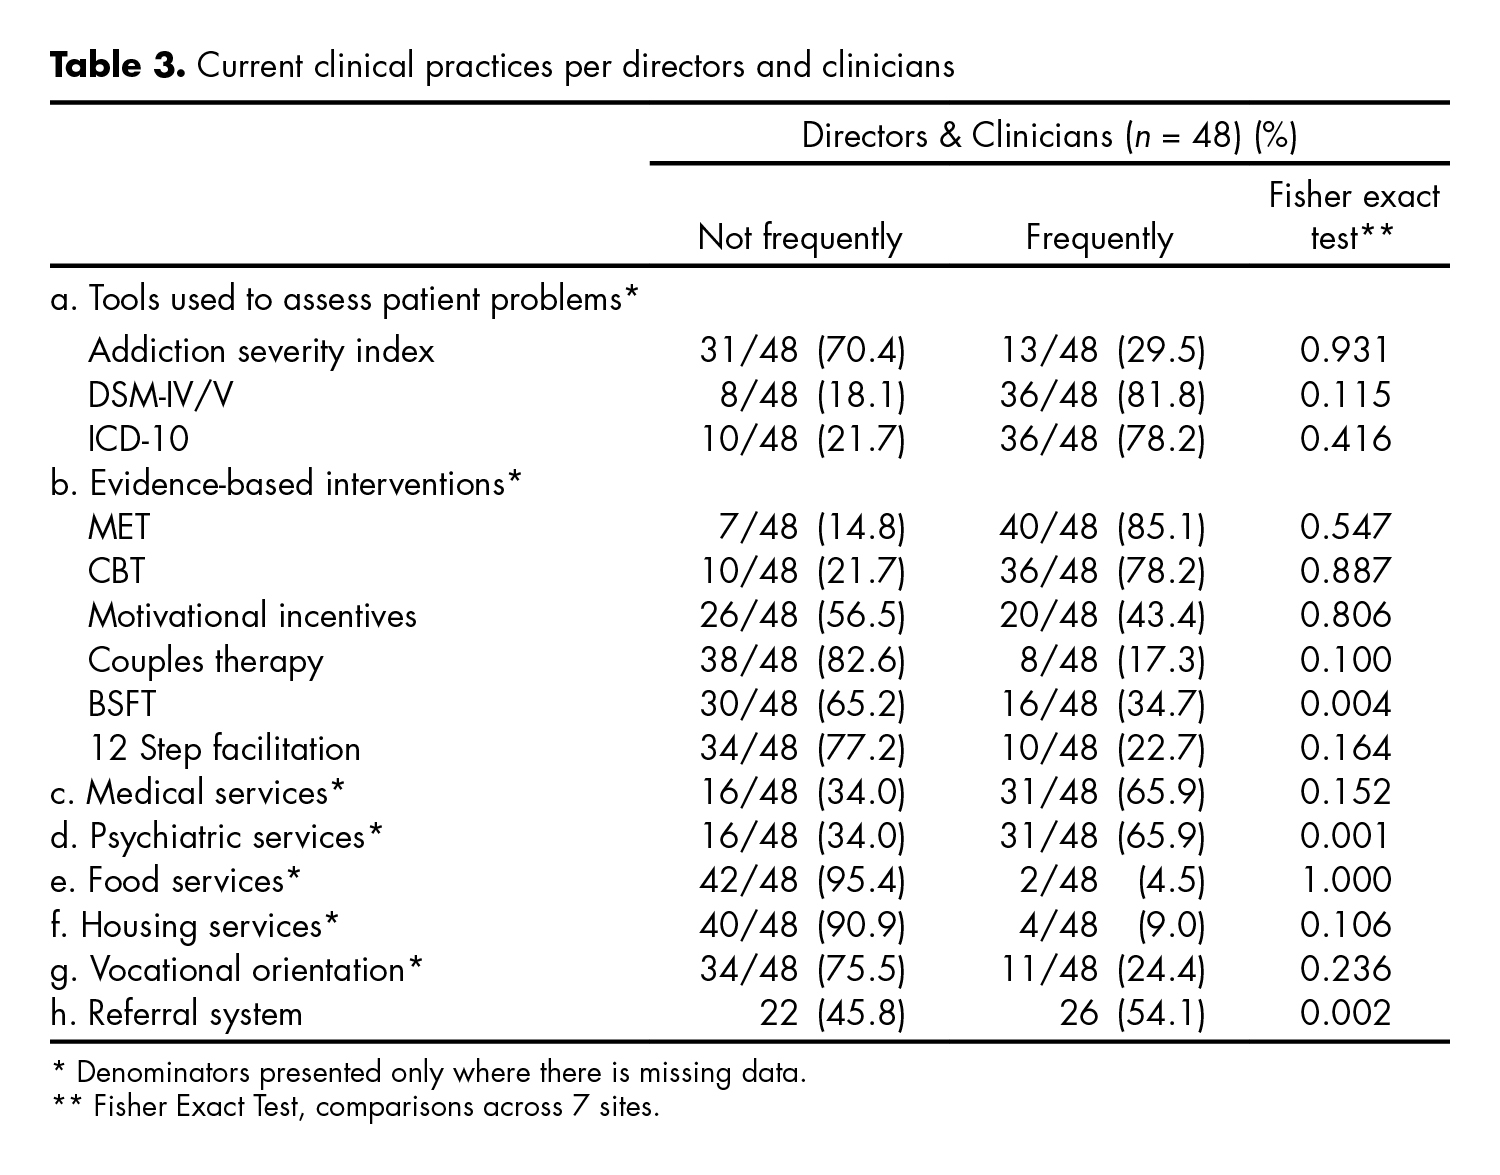 Current clinical practices per directors and clinicians